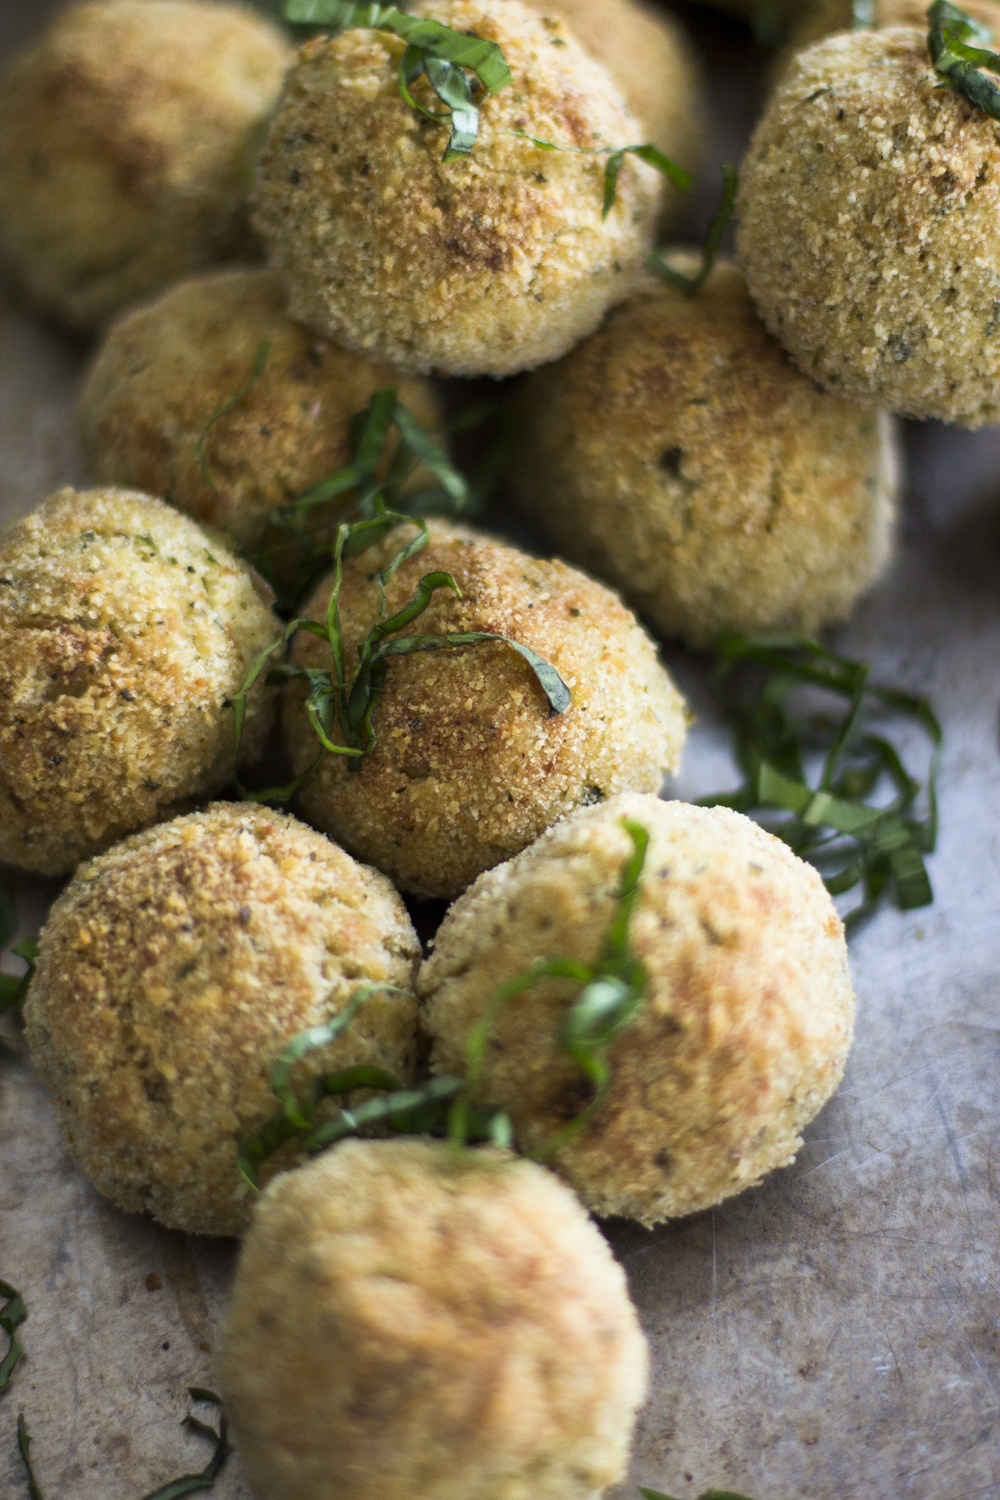 Baked Pesto Risotto Balls: My Diary of Us